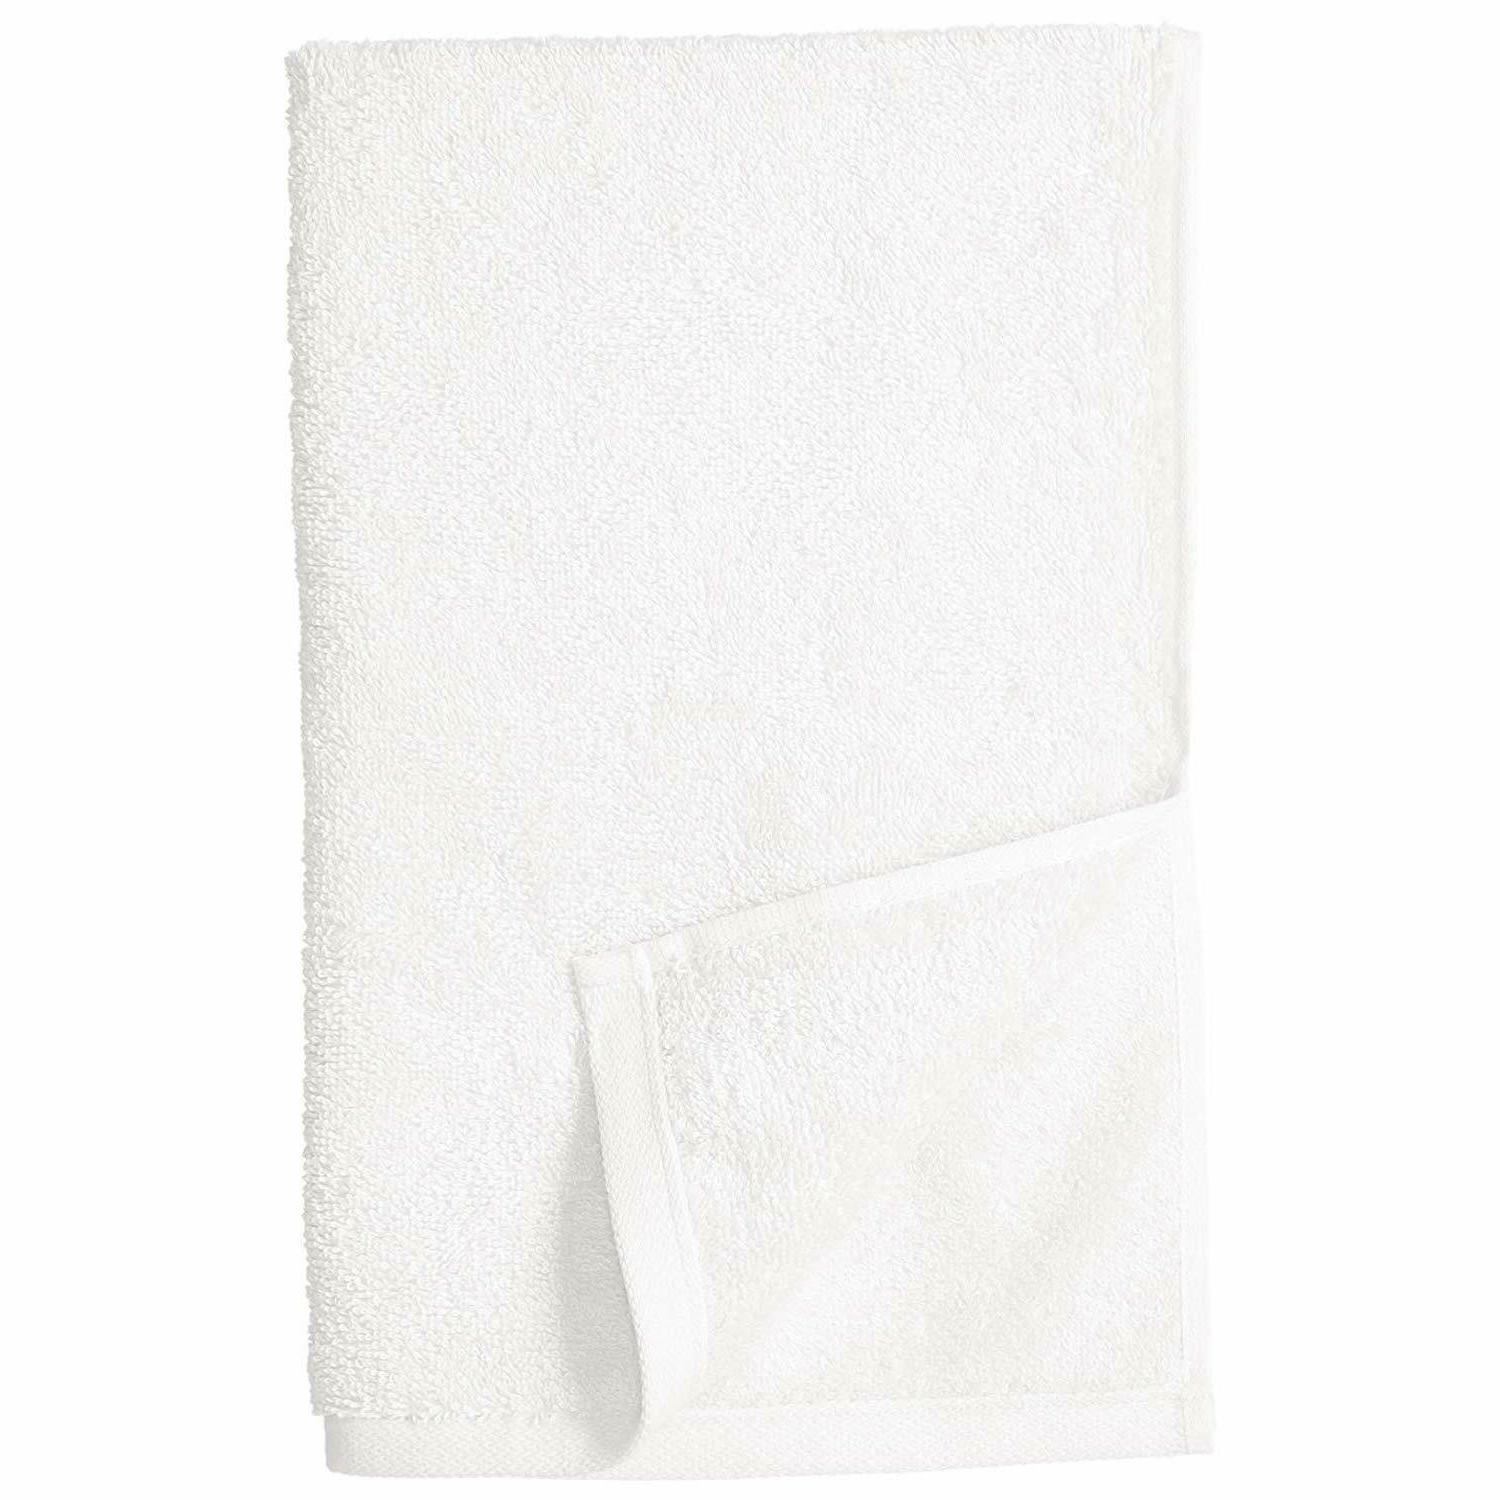 12 Cotton Hand 26x16 Absorbent - Shipping